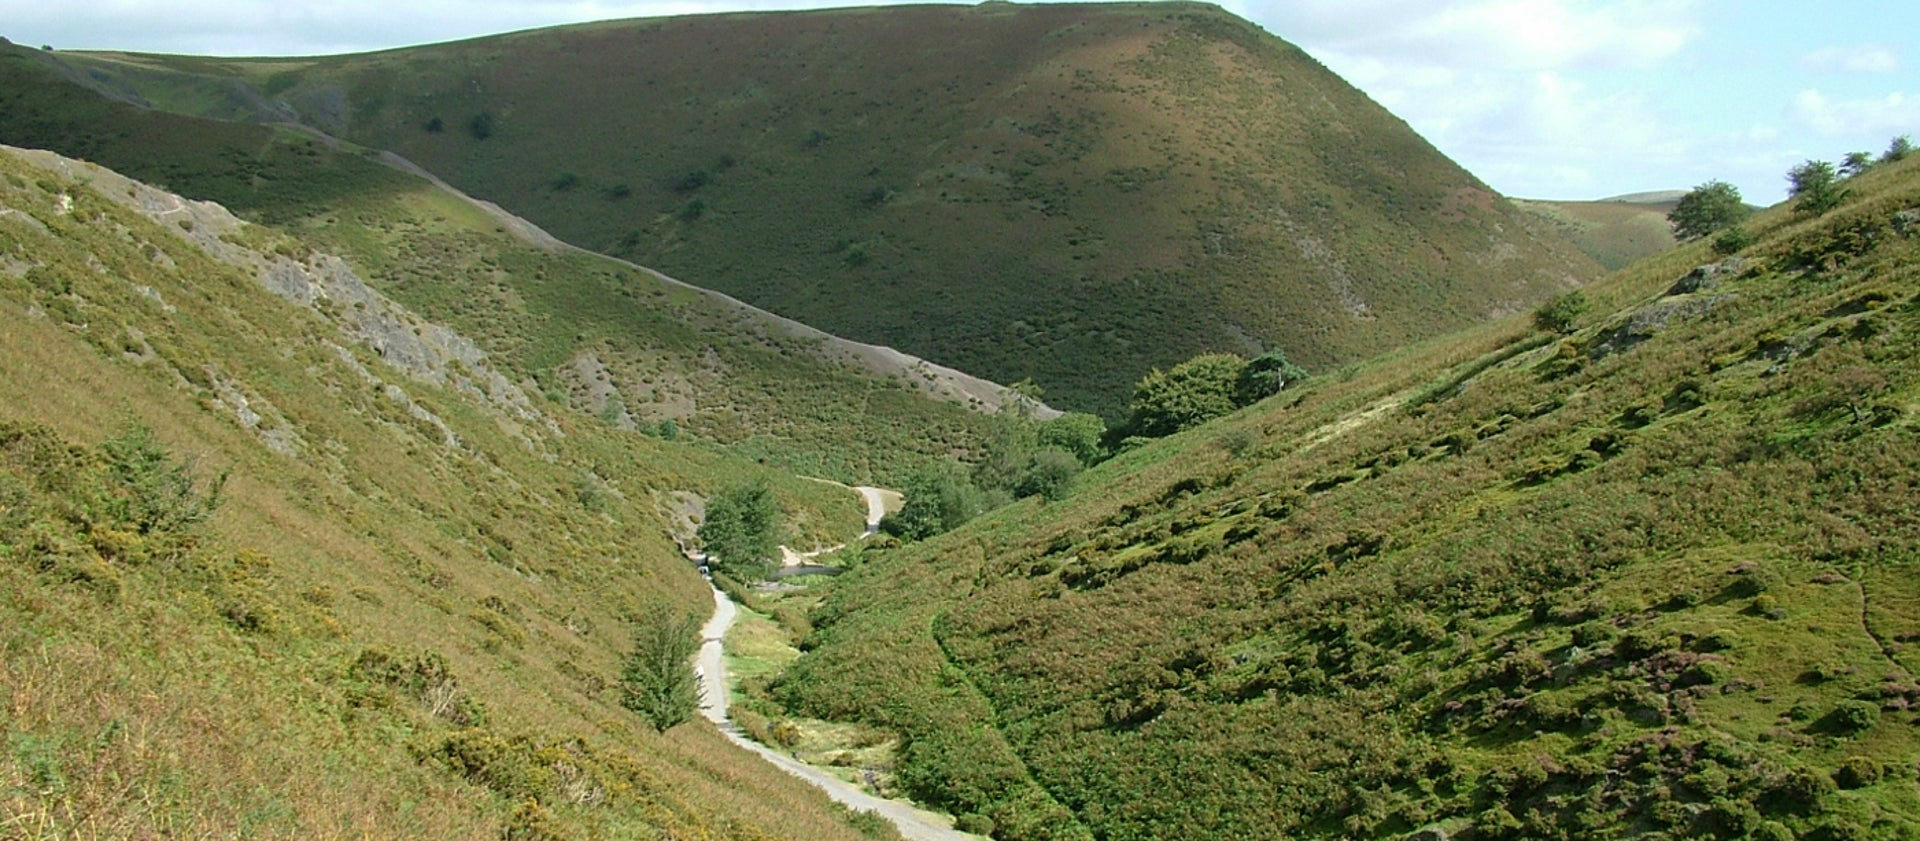 The Pipe Walk at Carding Mill Valley | National Trust